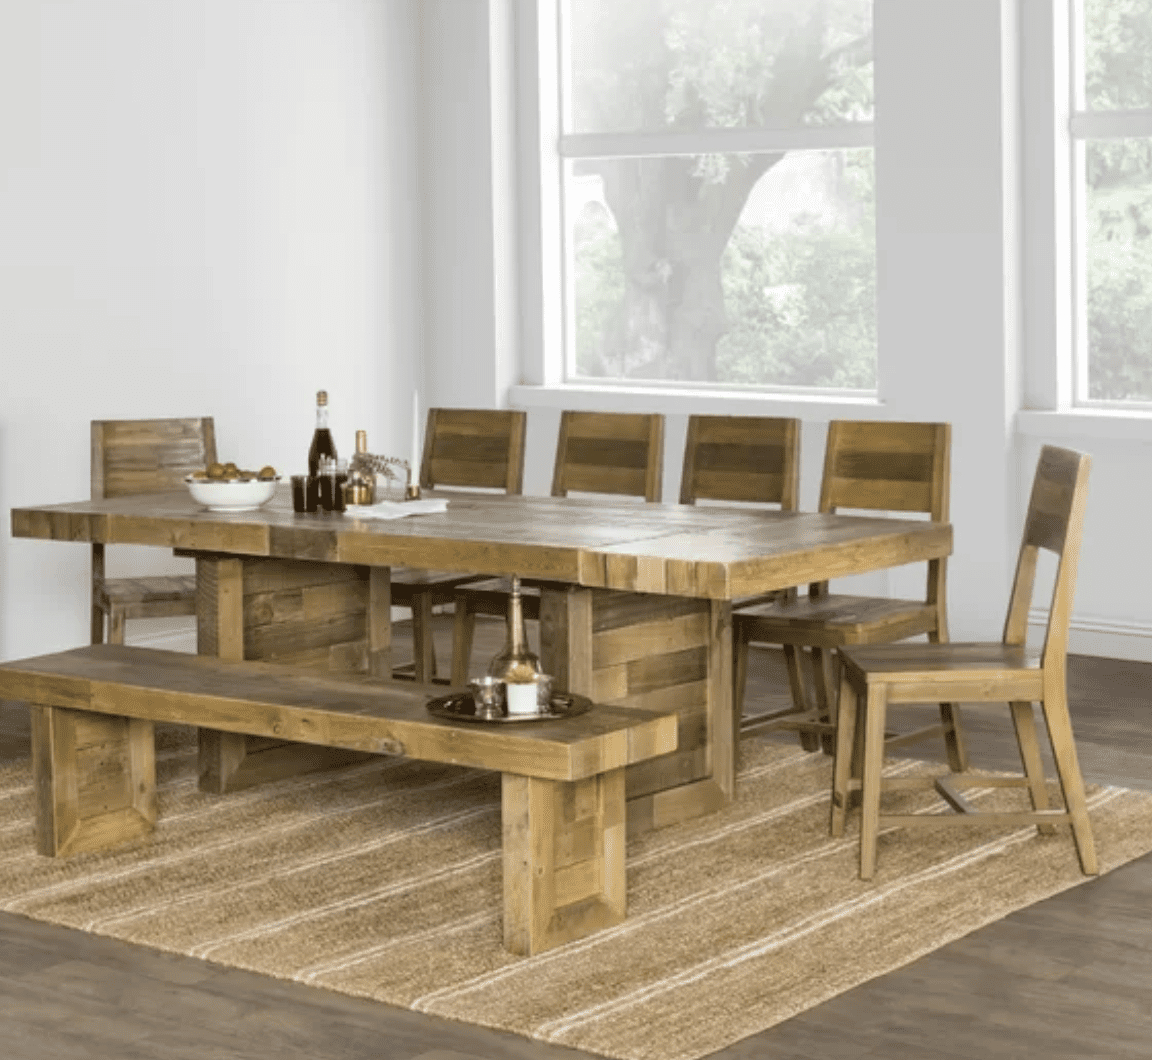 The 9 Best Dining Room Tables Of 2020 With Regard To Most Recently Released Rustic Brown Lorraine Extending Dining Tables (View 8 of 25)